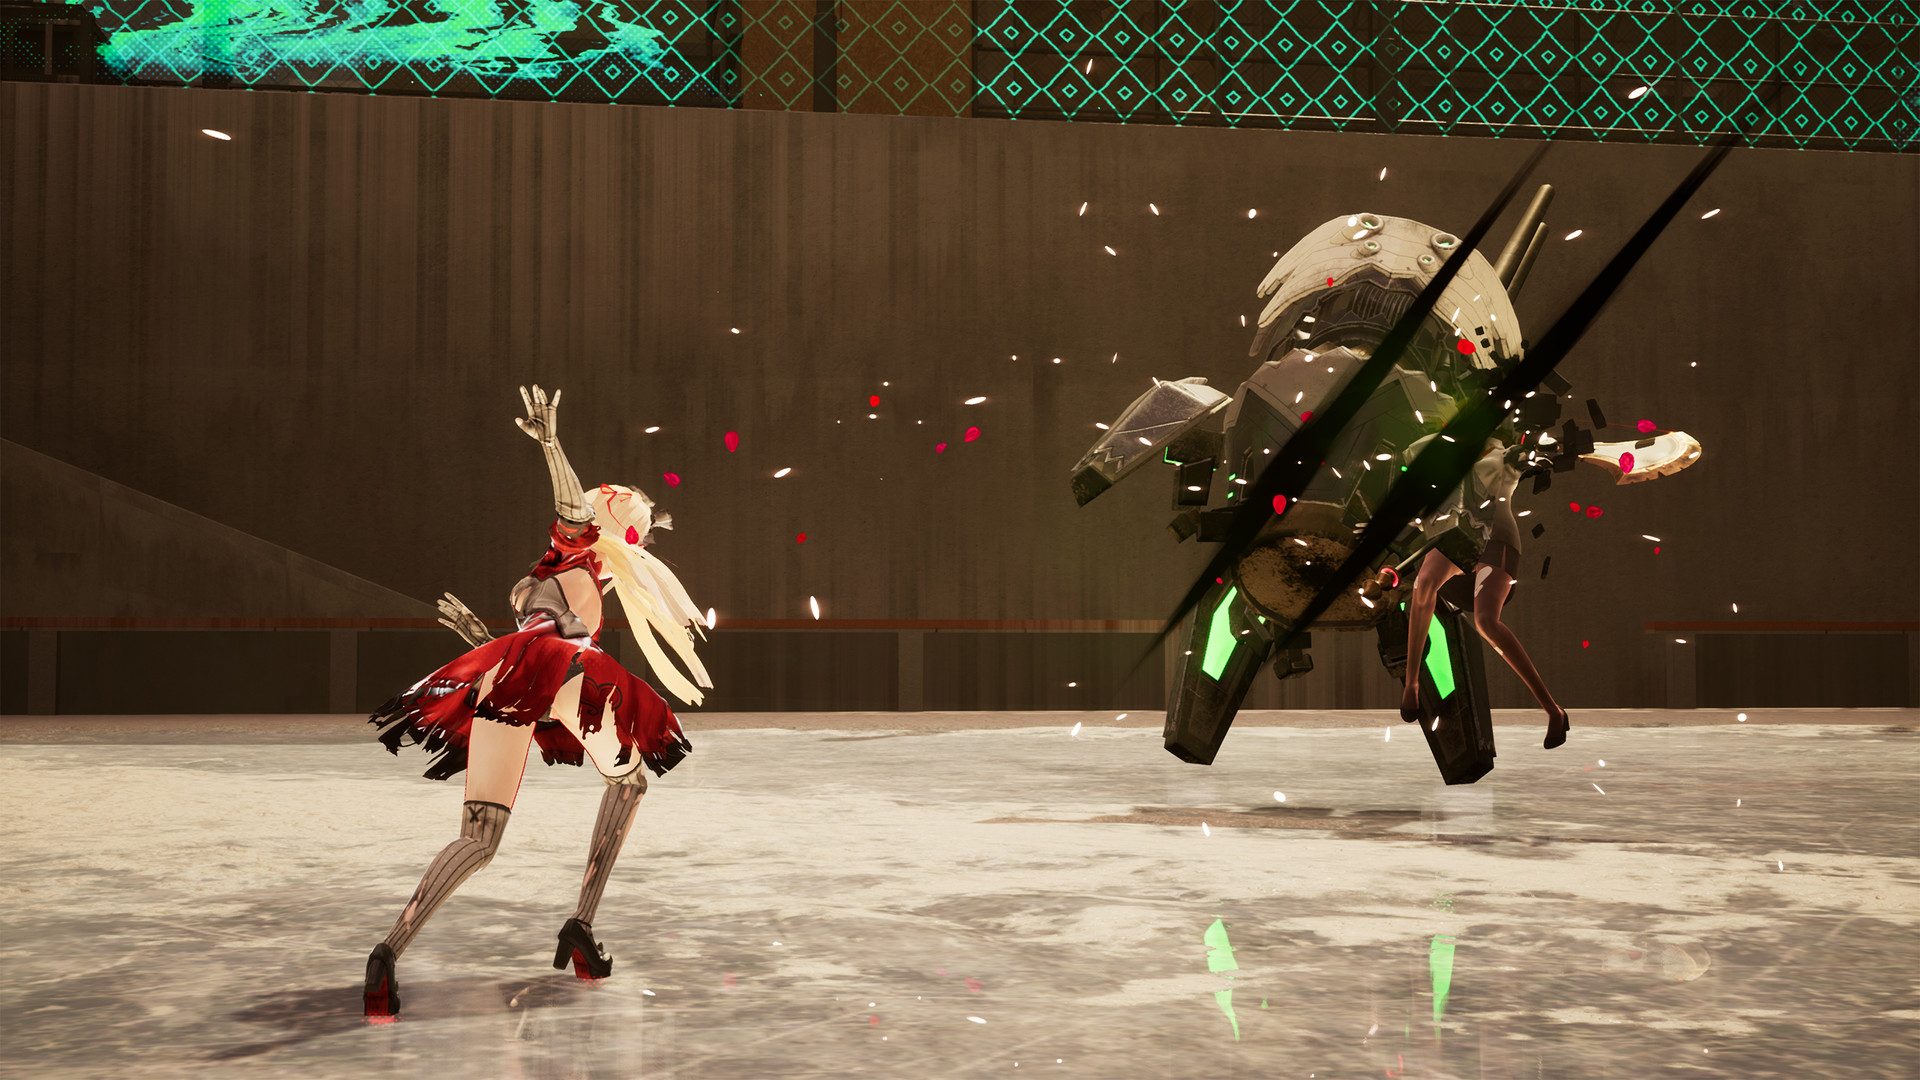 Mahou Arms on Steam